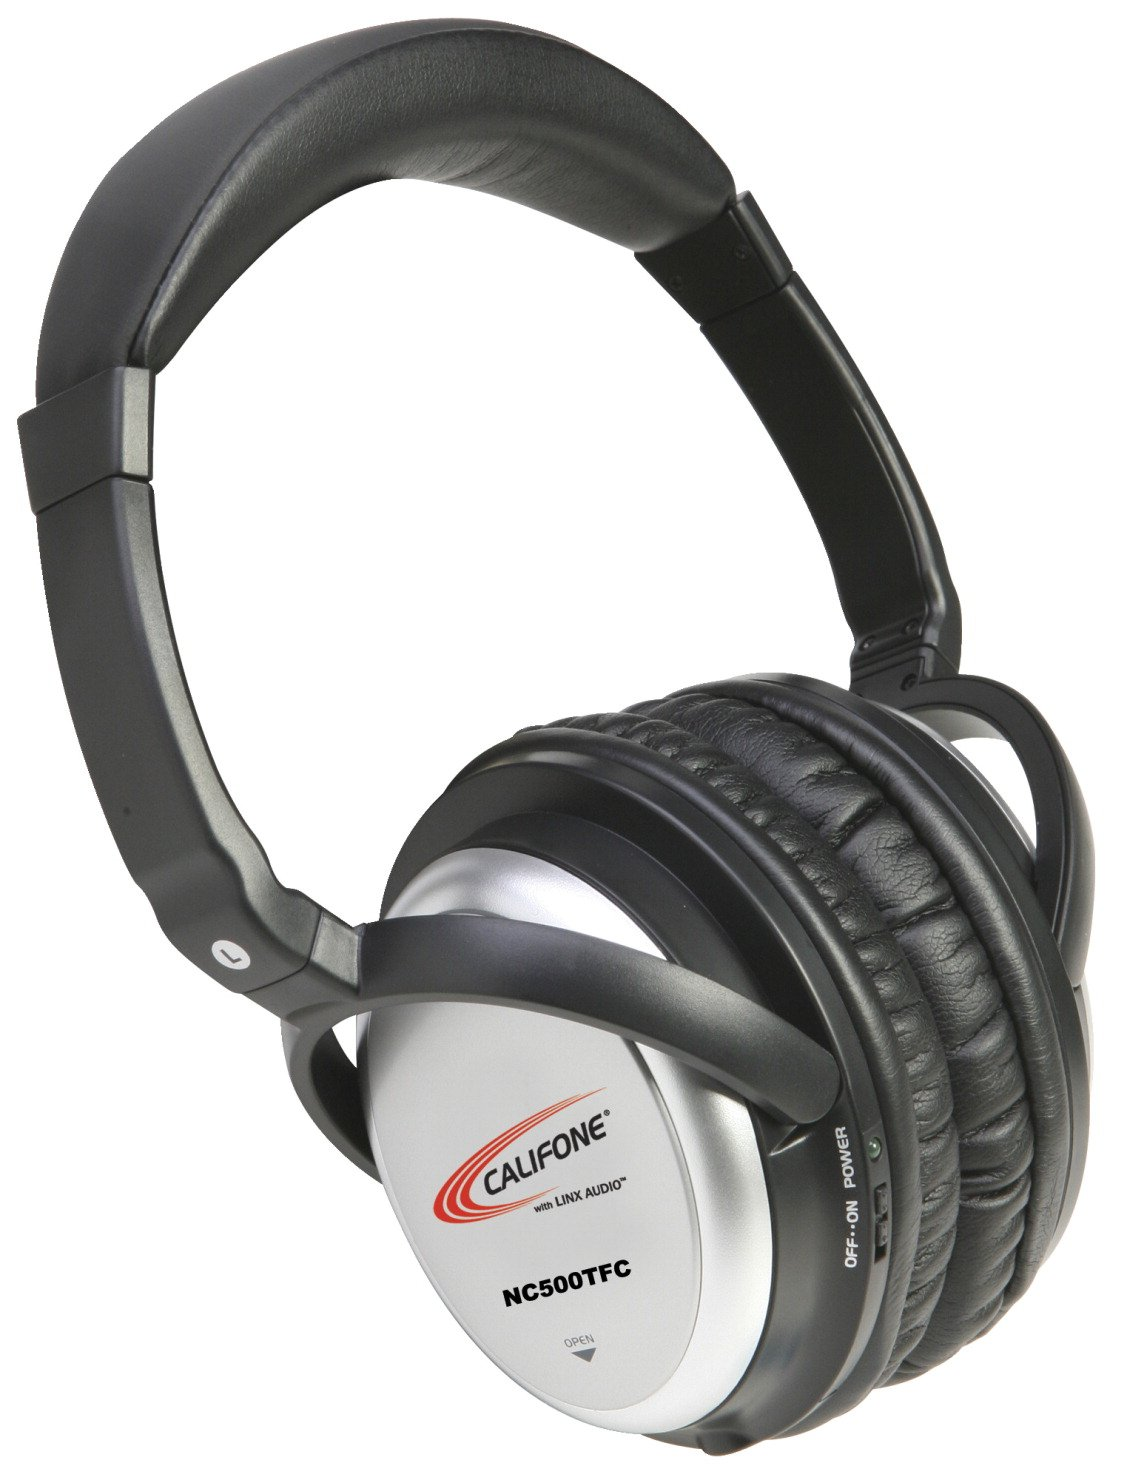 Amazon.com: Califone NC500TFC Active Noise Cancelling Headphones with  Storage Case: Home Audio & Theater